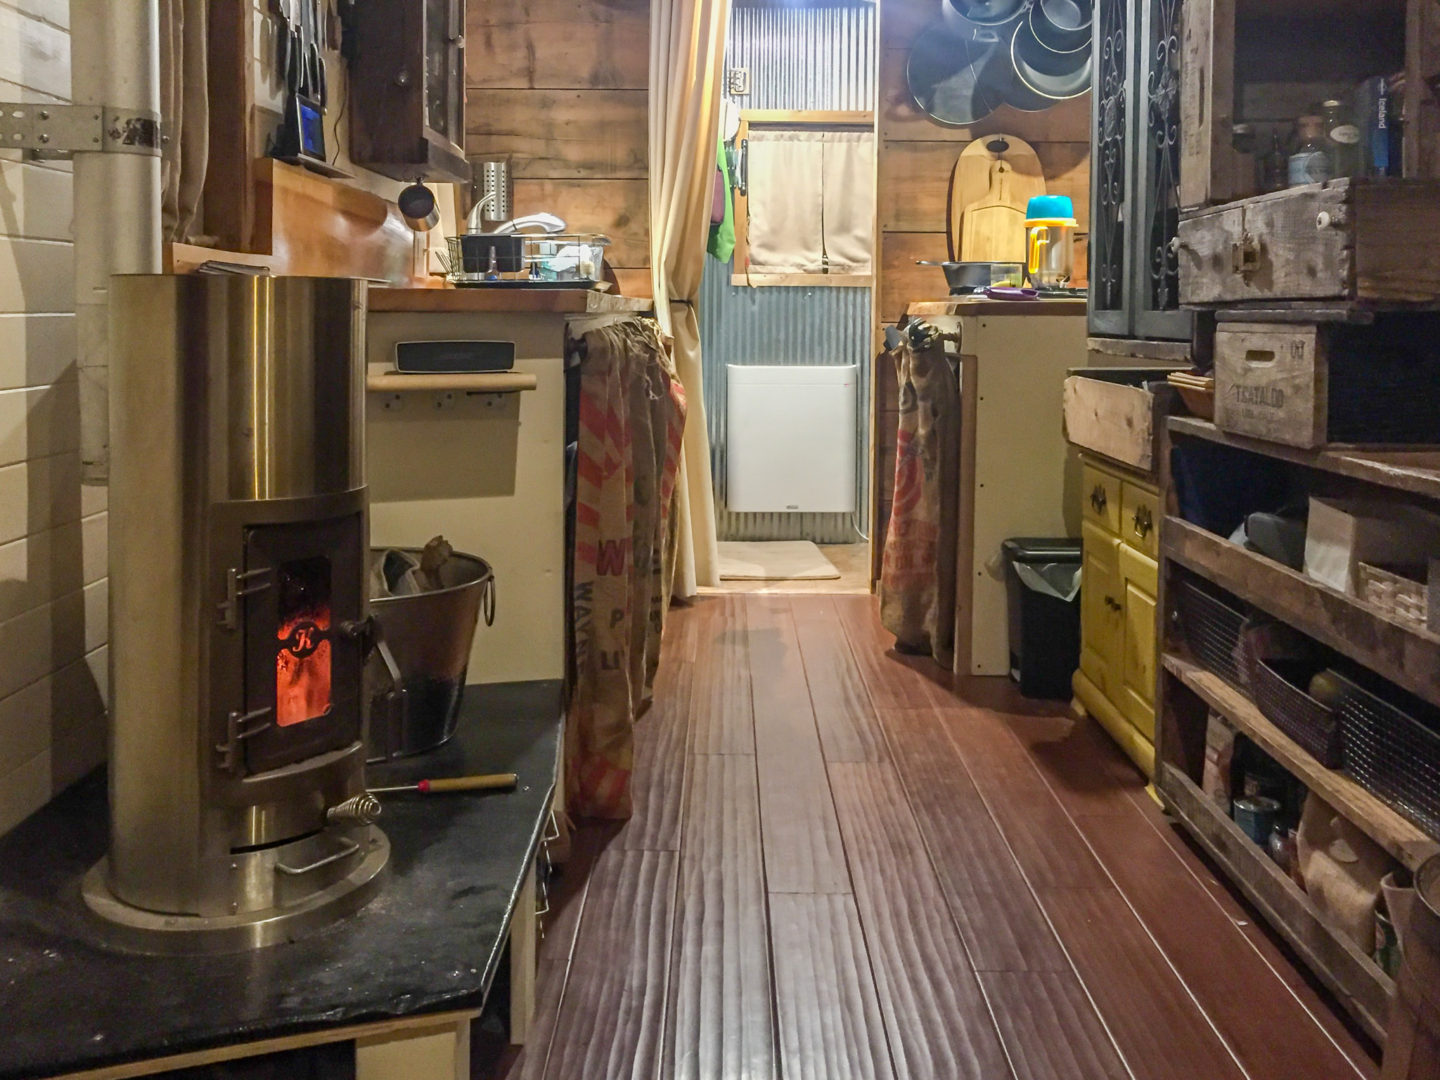 Heating a Tiny Home for a Colorado Winter